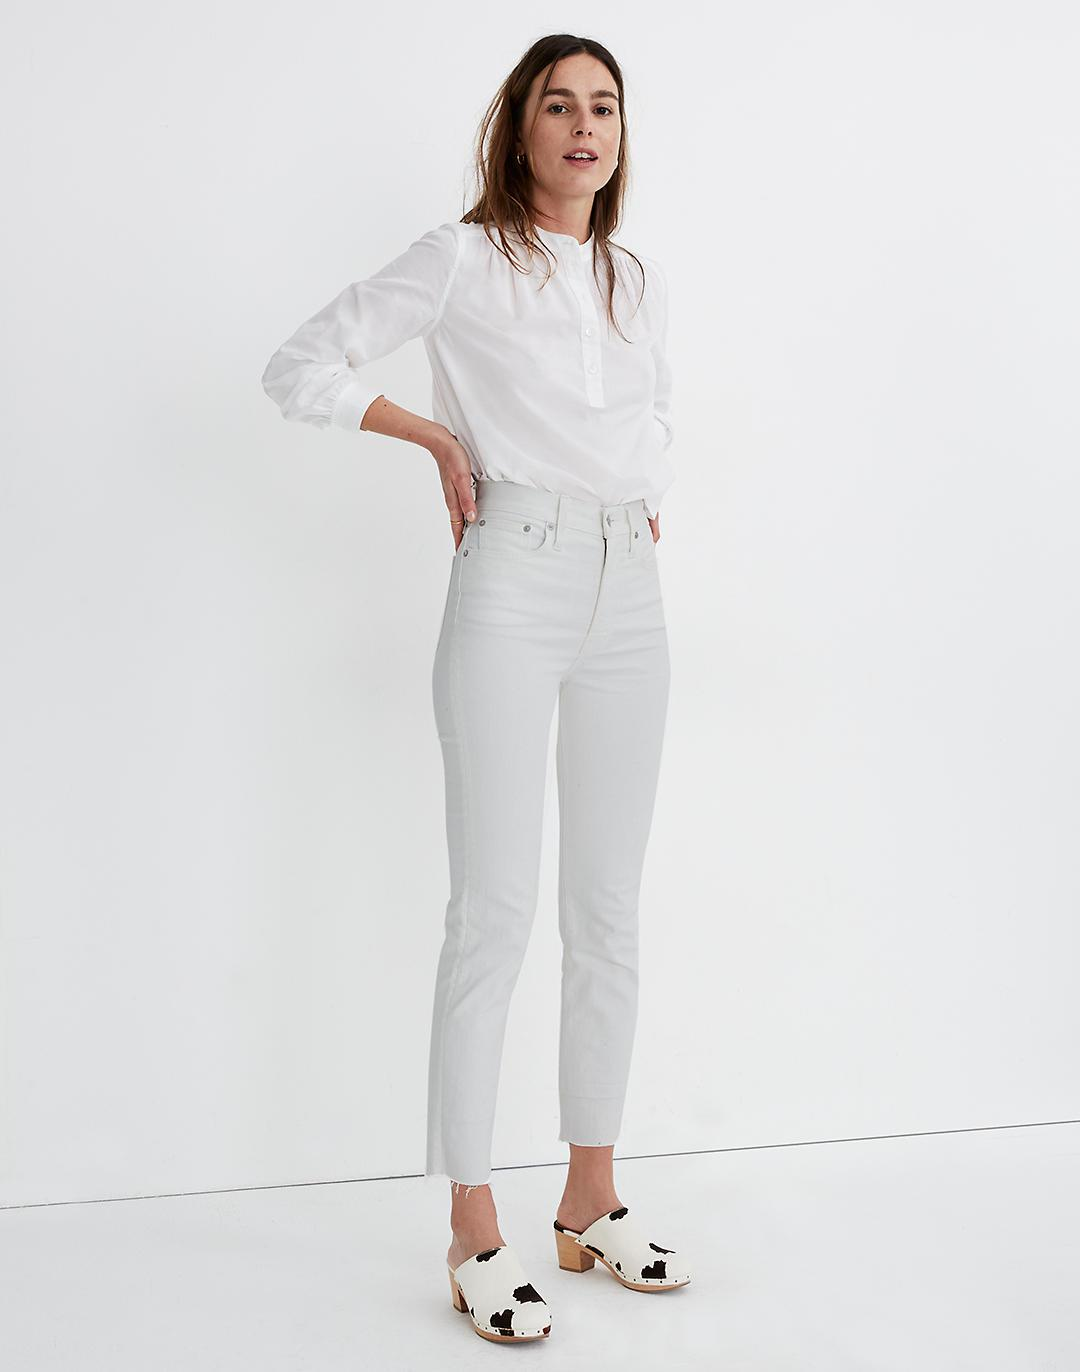 The Tall Perfect Vintage Jean in Tile White: Raw-Hem Edition